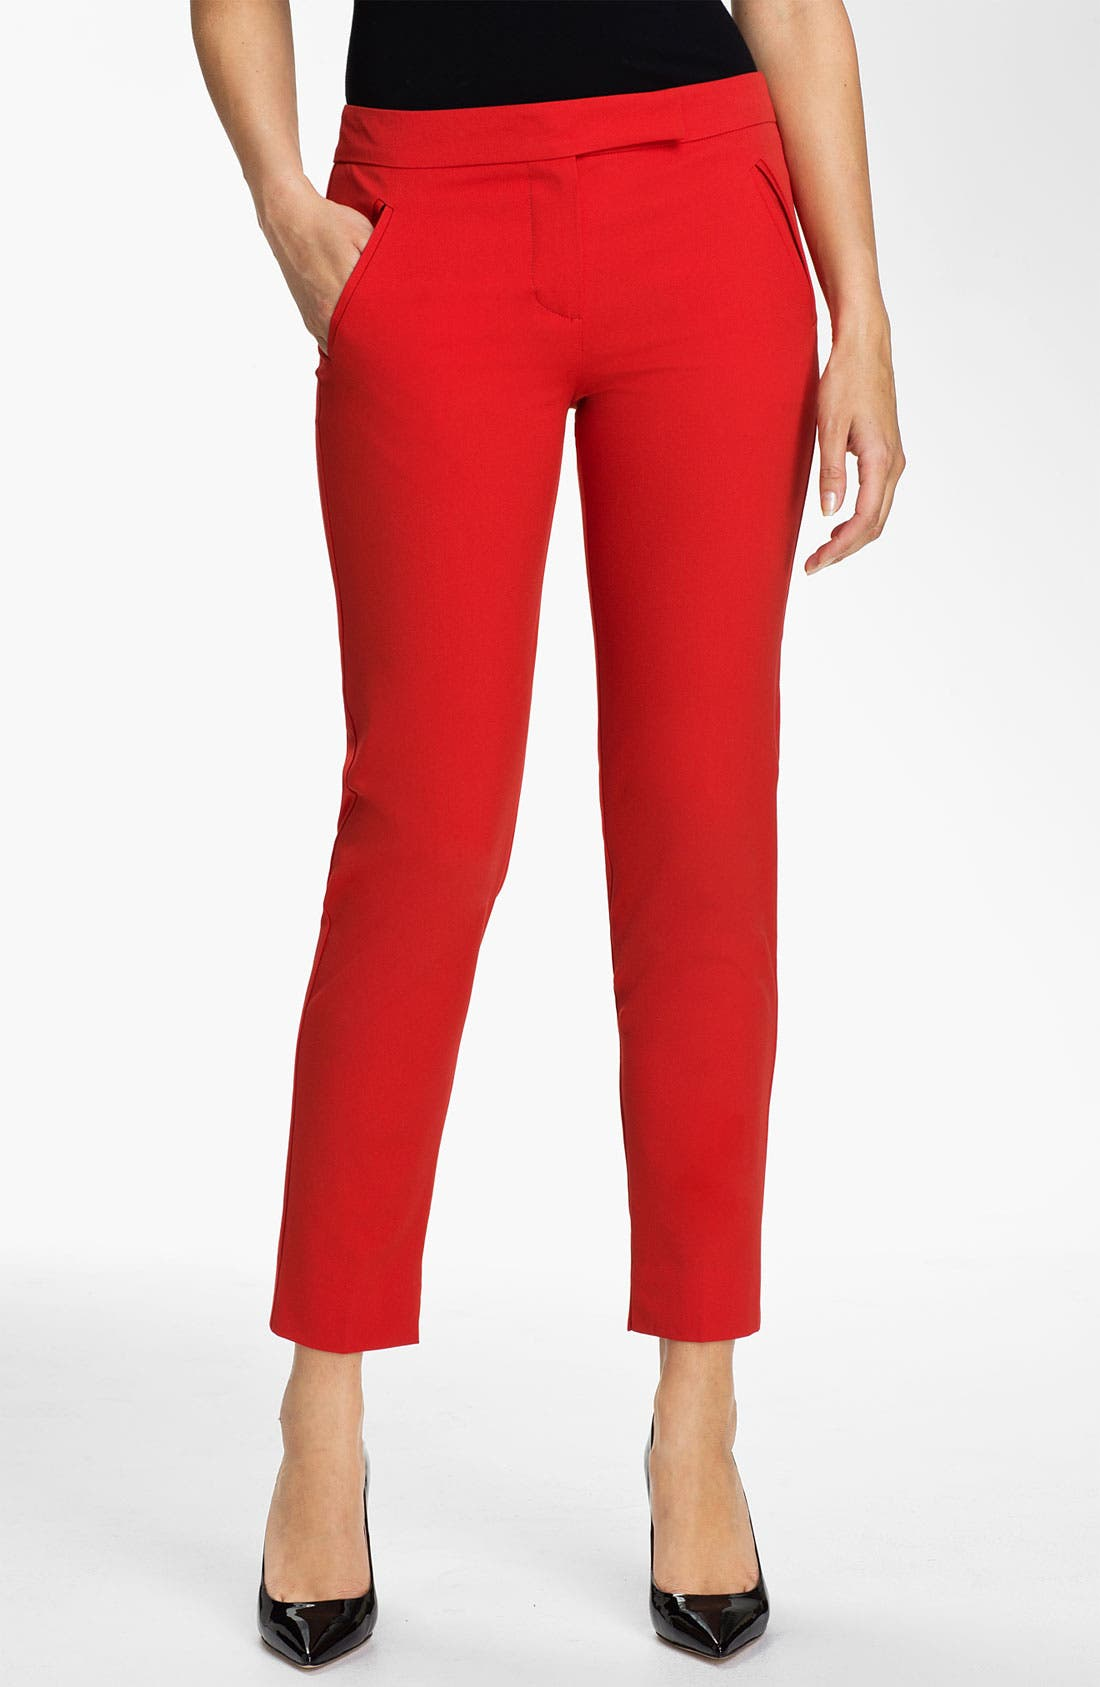 Main Image - Trina Turk 'Solitaire' Skinny Pants